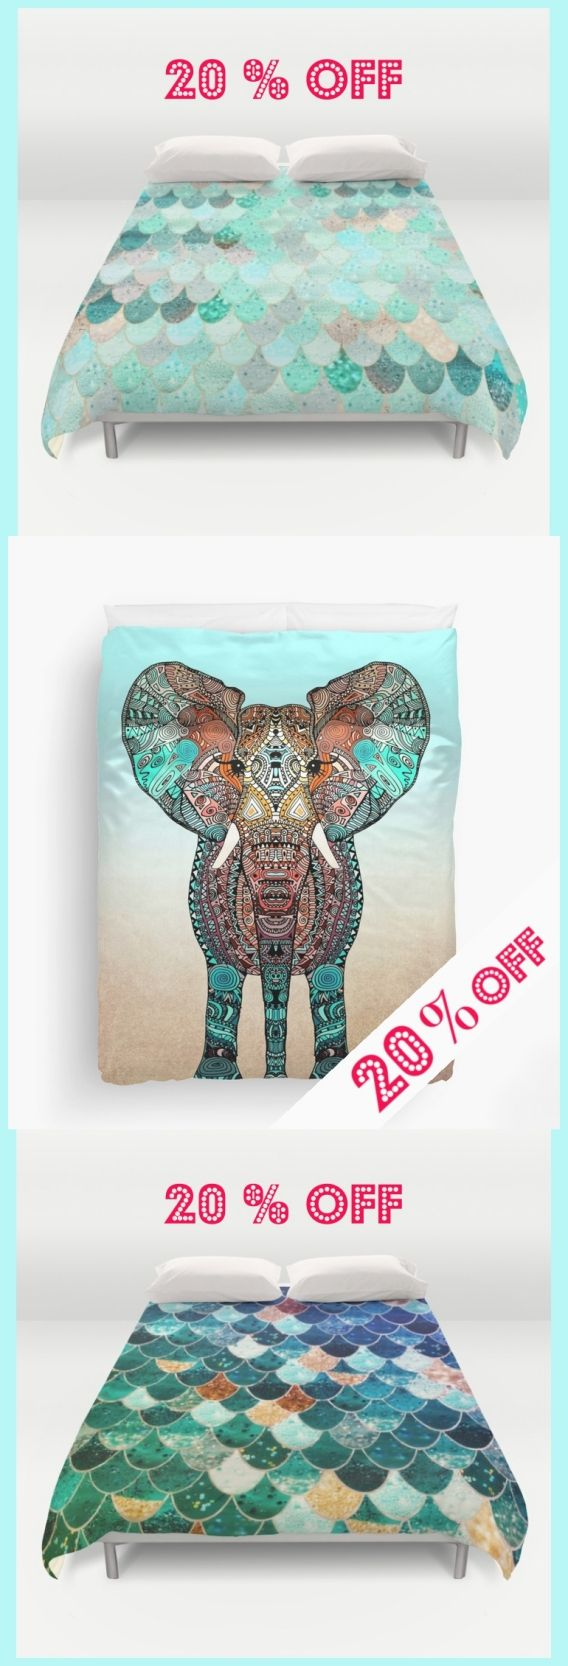 Right in time for a new spring feeling I can offer you 20 % on all my duvet covers in my Society6 shop! Just add: Your Promo Code: 6XW8X7R4H9W4 at the checkout. Free Shipping is included! Many more designs in my shop .... #duvet #duvetcover #sale #promo #gold #silver #mermaidscales #mint #teal #blue #seafoam #pastel #pastels